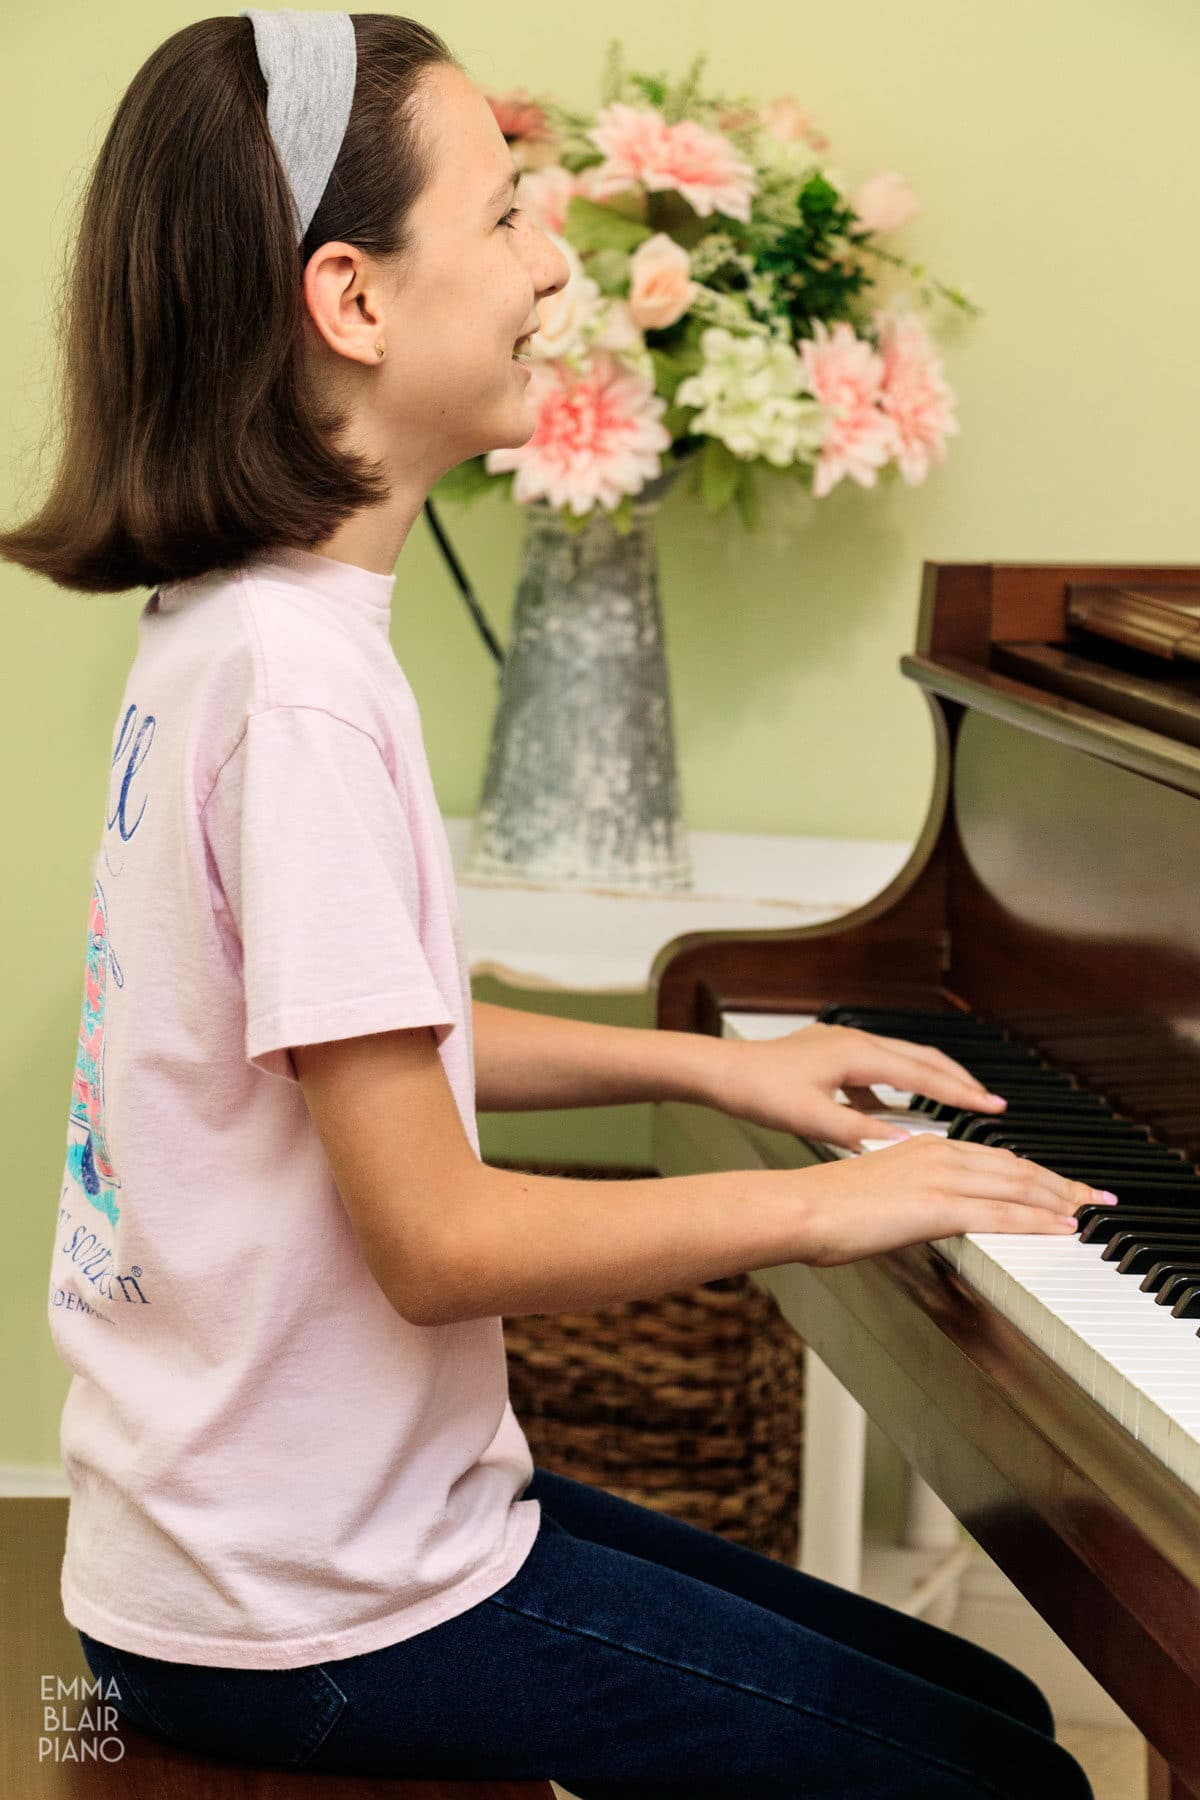 young girl smiling while she plays the piano